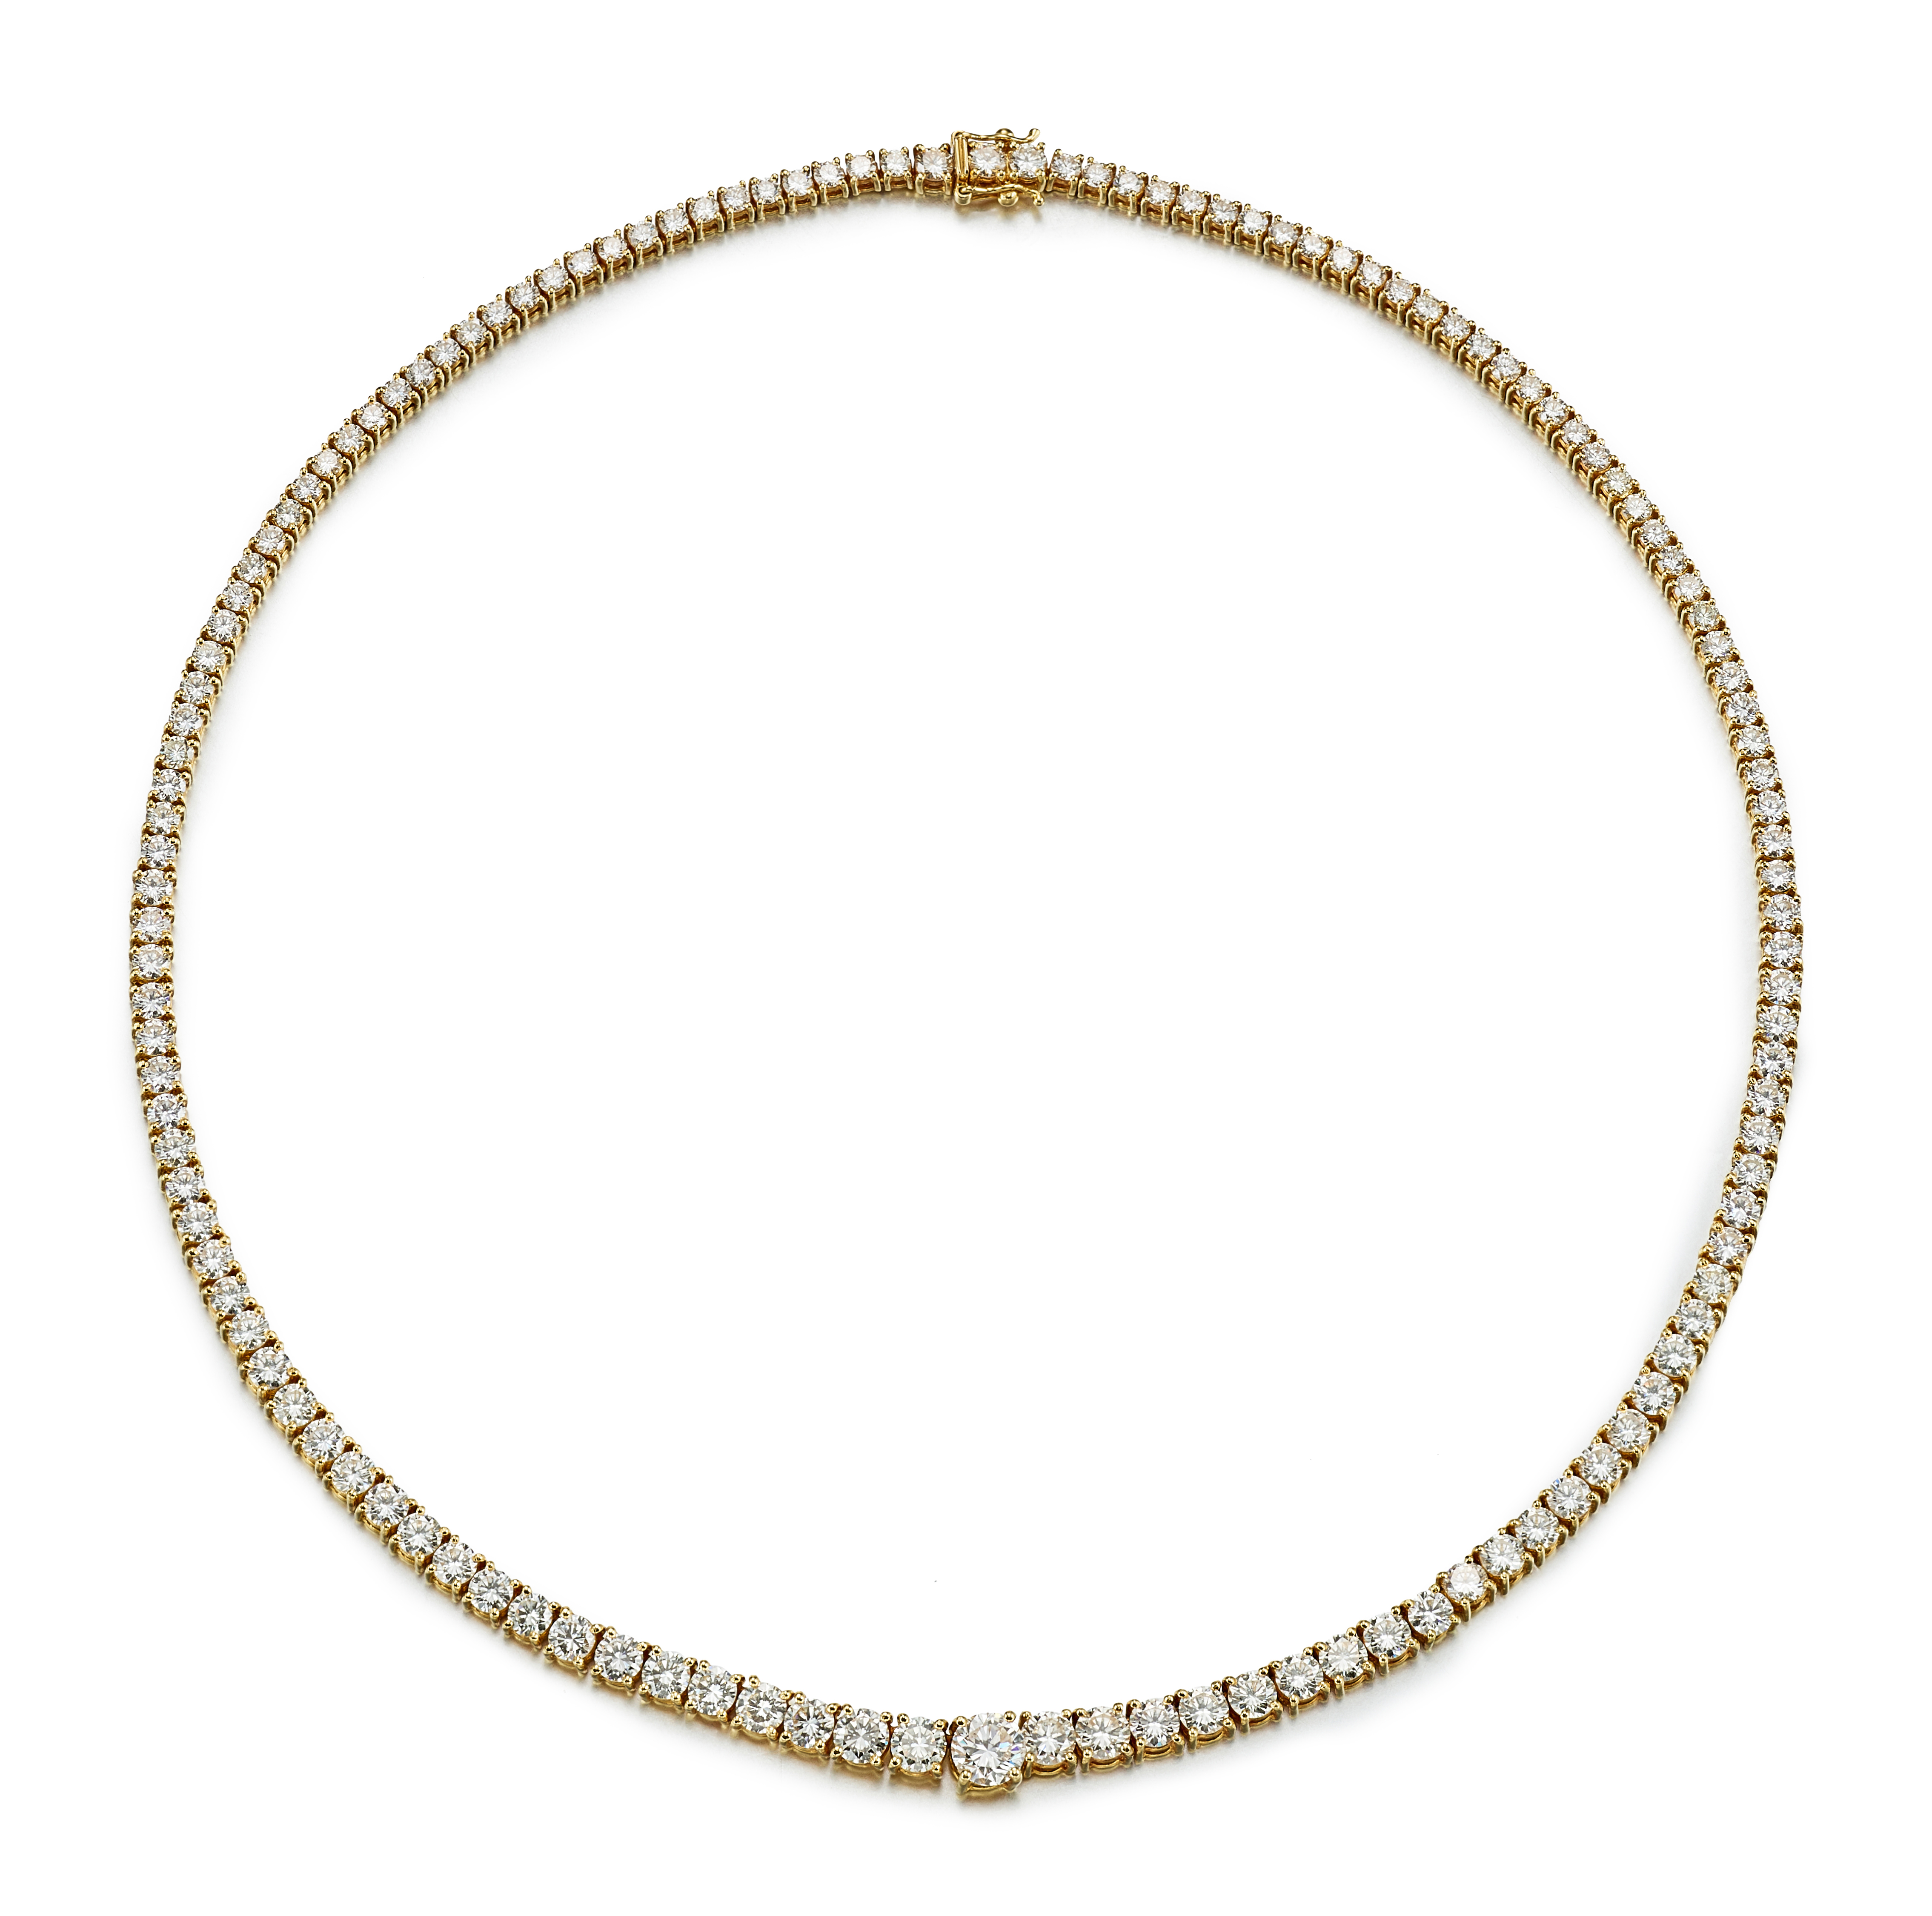 View 1 of Lot 9136. DIAMOND NECKLACE   鑽石項鏈.